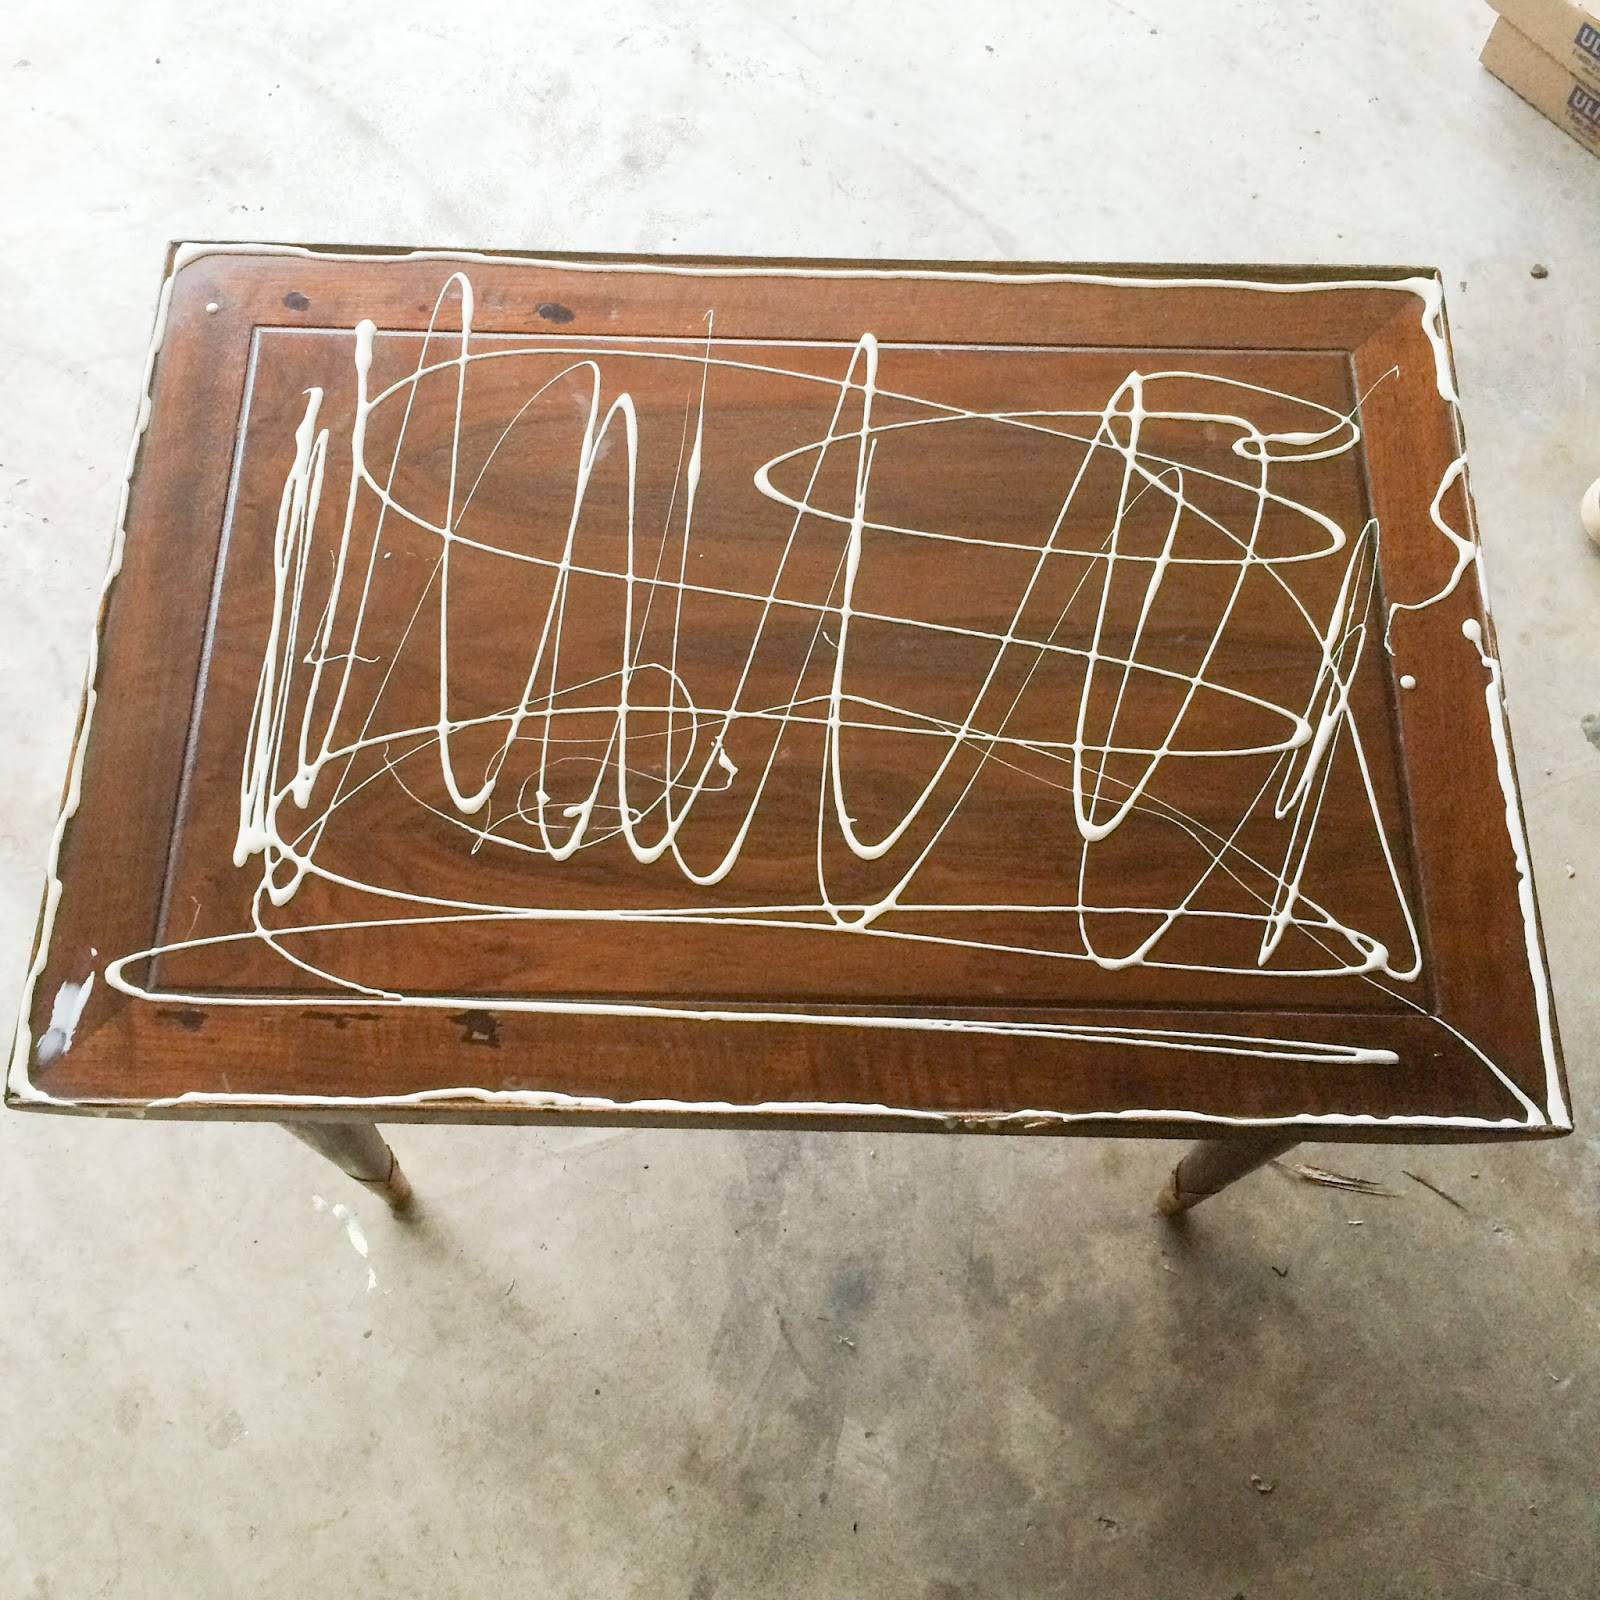 Picture Of Stylish And Chic Diy Coffee Table Revamp 4